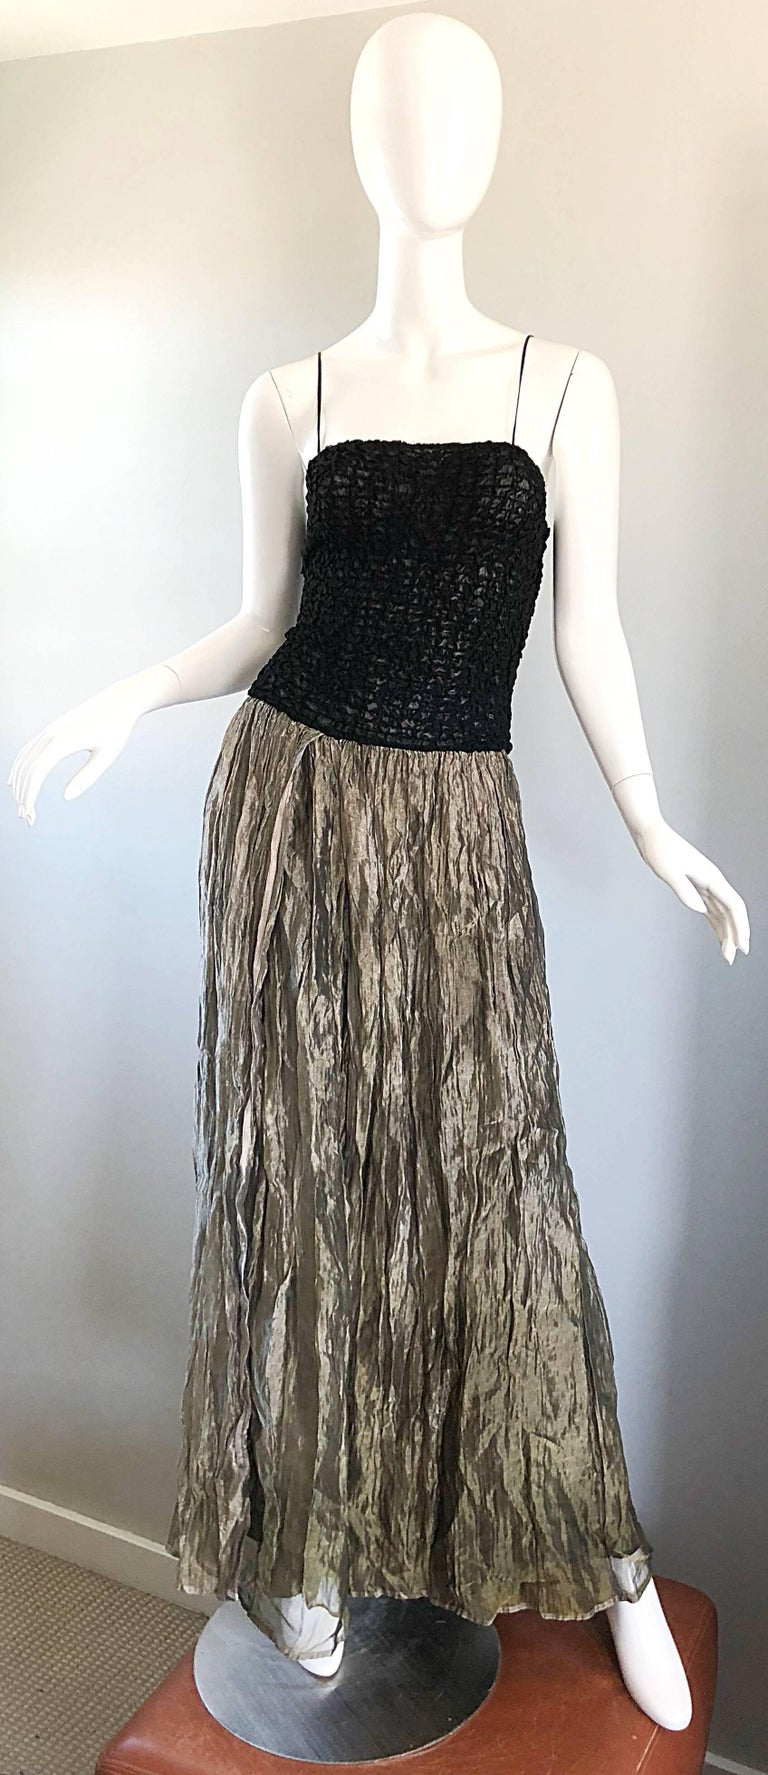 Stunning 1990s MORGANE LE FAY black and gold ombre metallic evening gown! Features a spaghetti strap semi sheer bodice that stretches to fit. Panels of gold / bronze ombre crinkled silk skirt with a black underlay. Looks phenomenal on. THe pictured